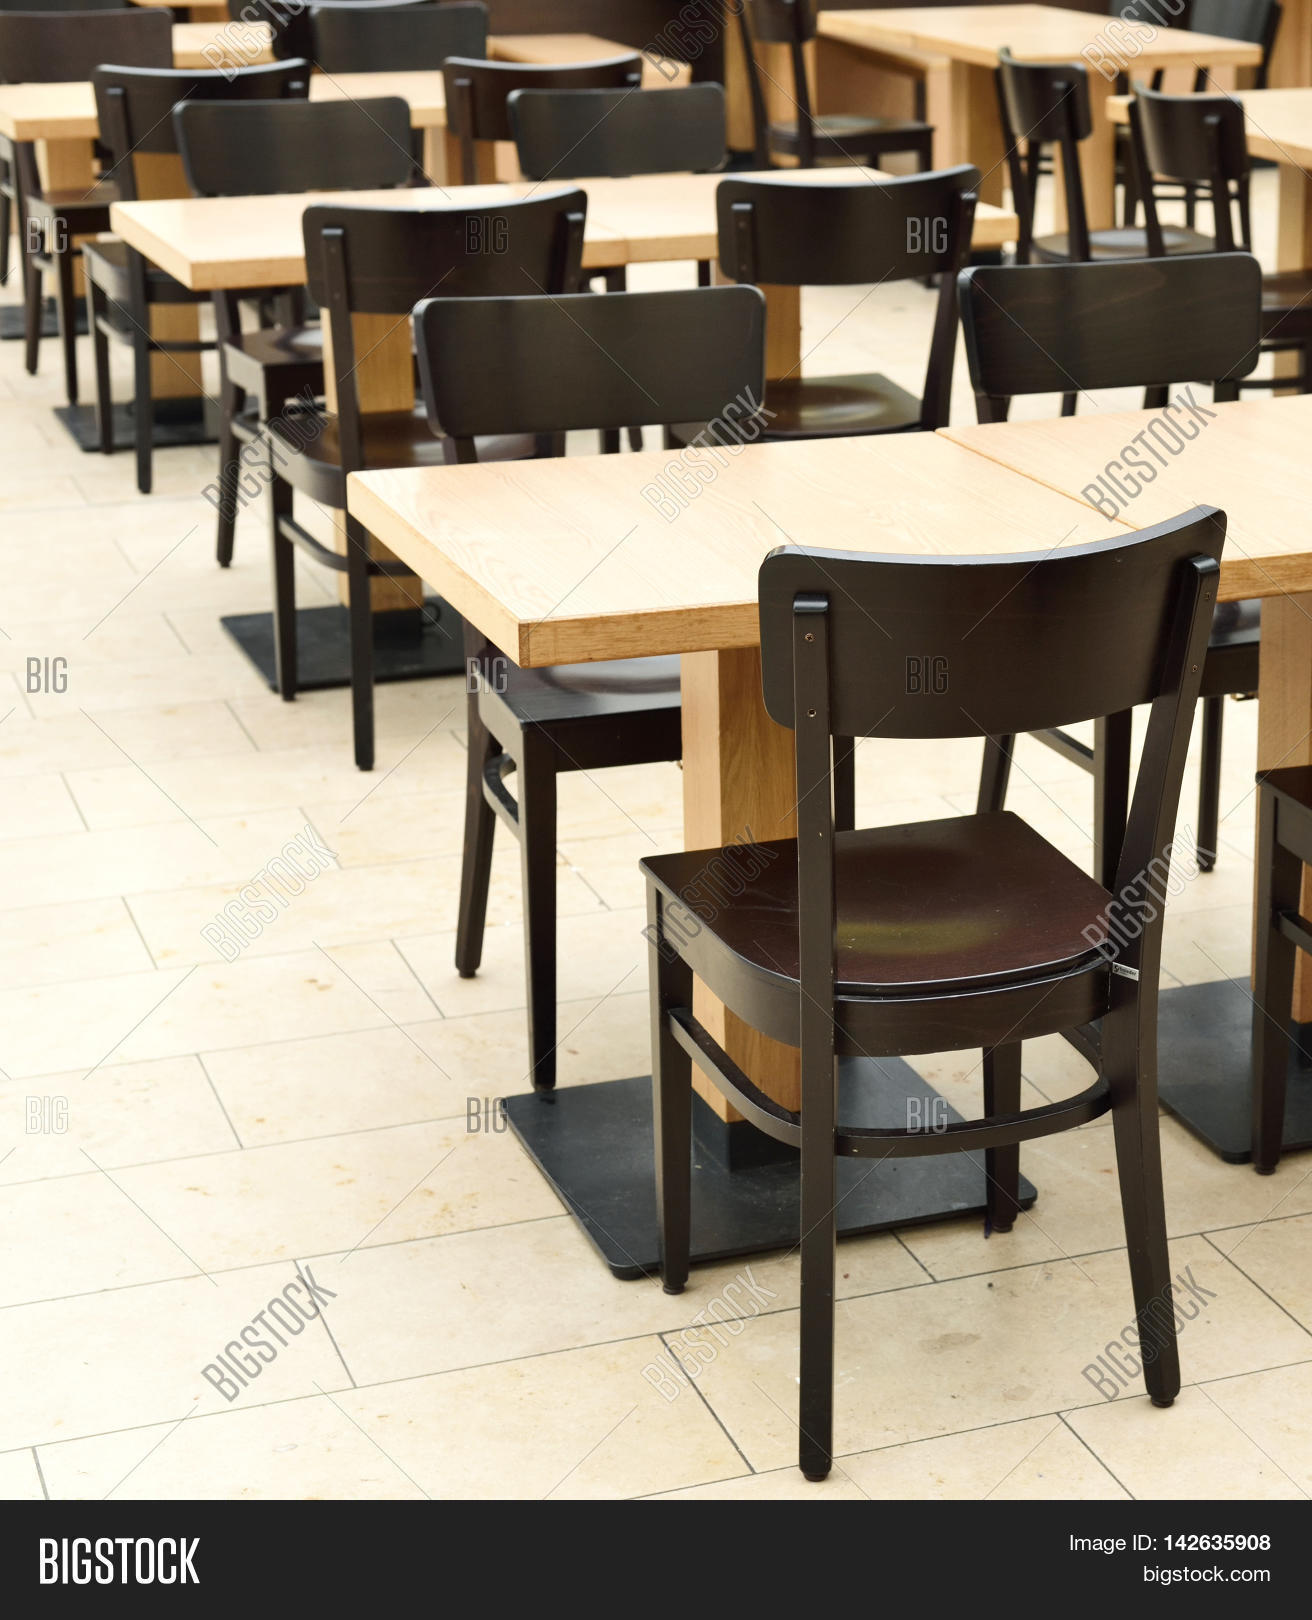 Restaurant furniture in an empty dining hall or restaurant for Dining hall furniture